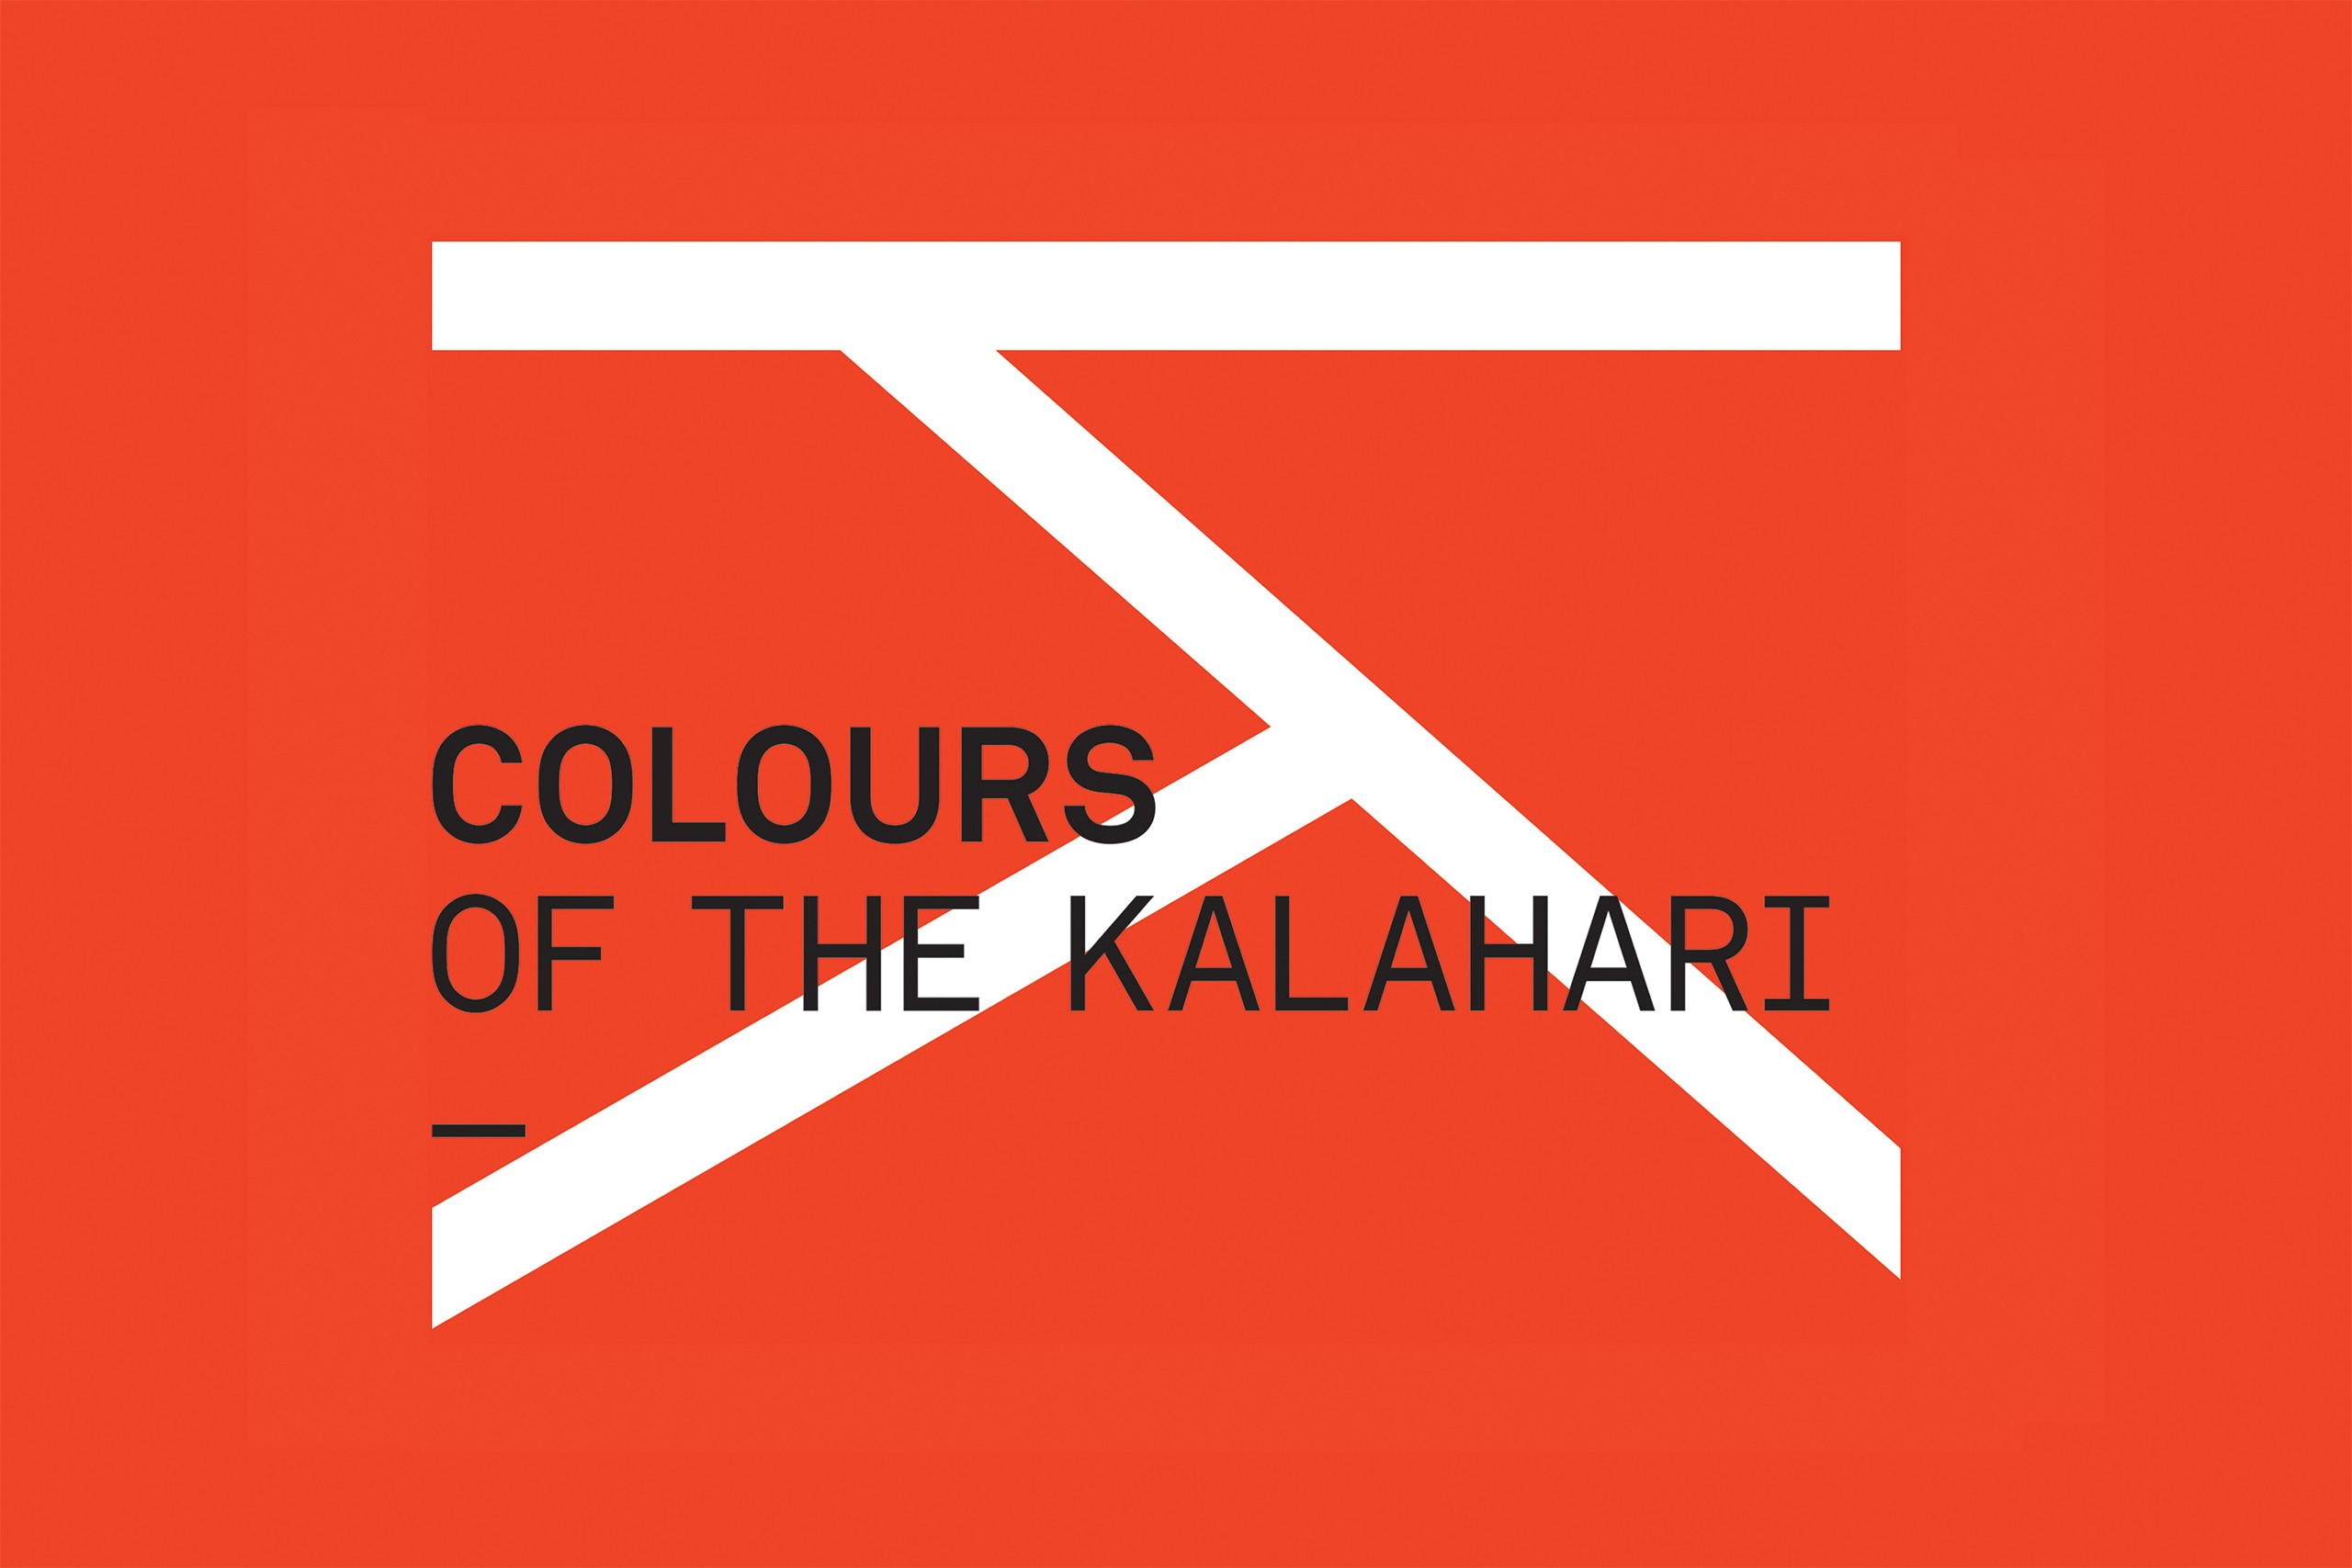 Colours of the Kalahari - Brand identity & exhibition